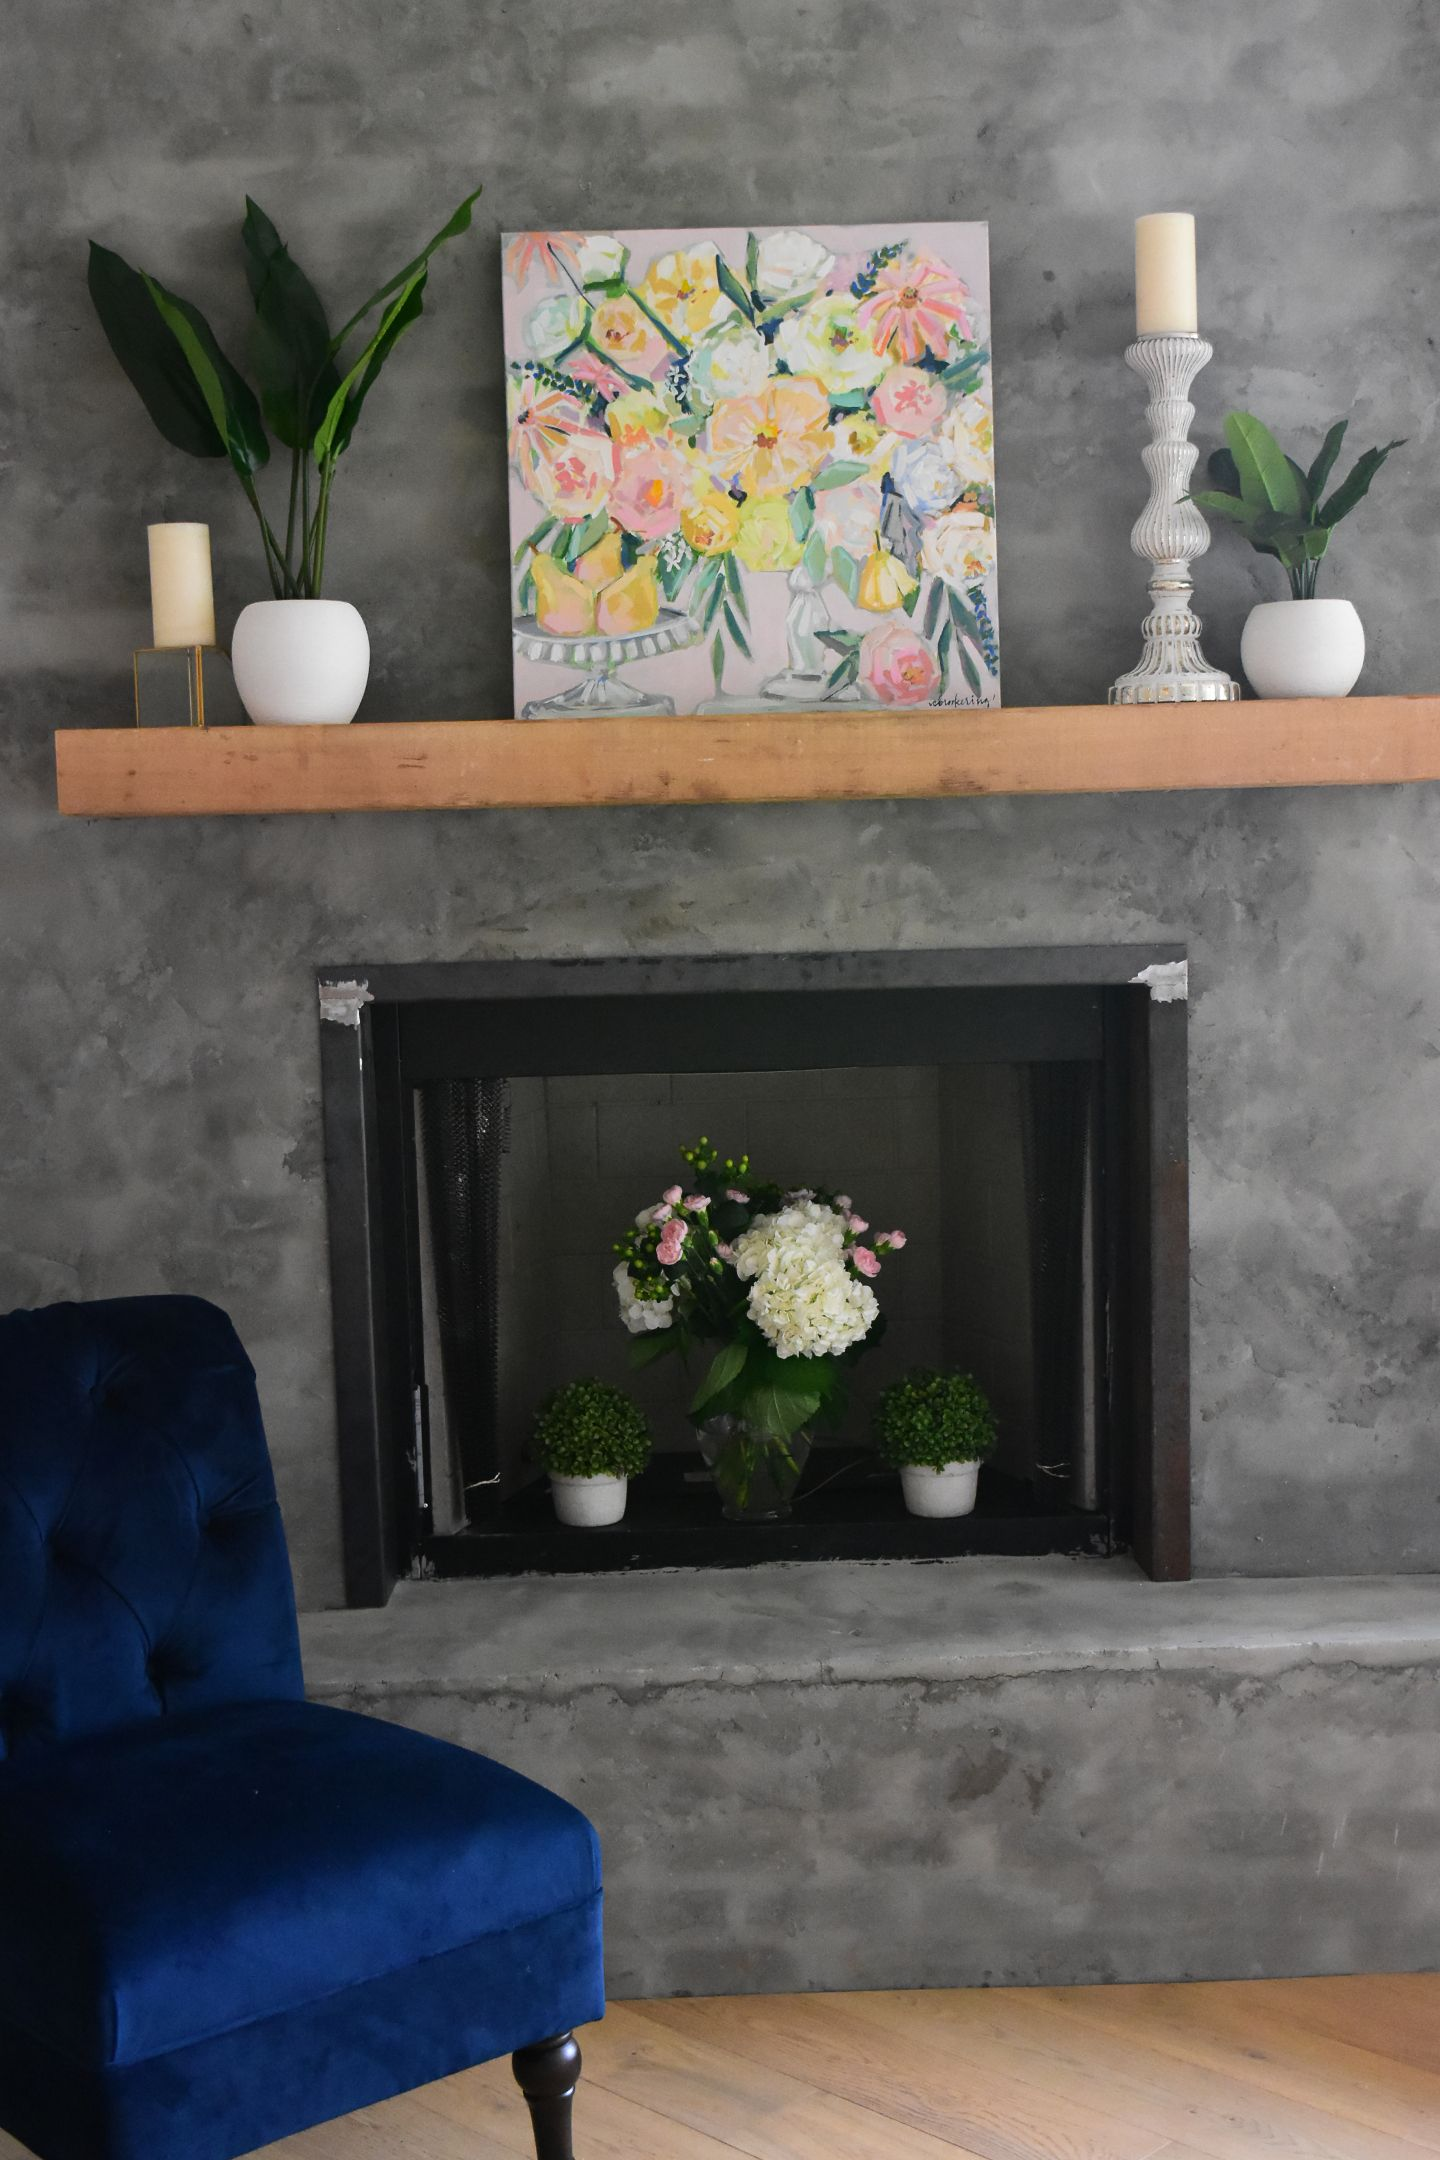 Best Bright Fruit And Floral Painting On Modern Fireplace 400 x 300